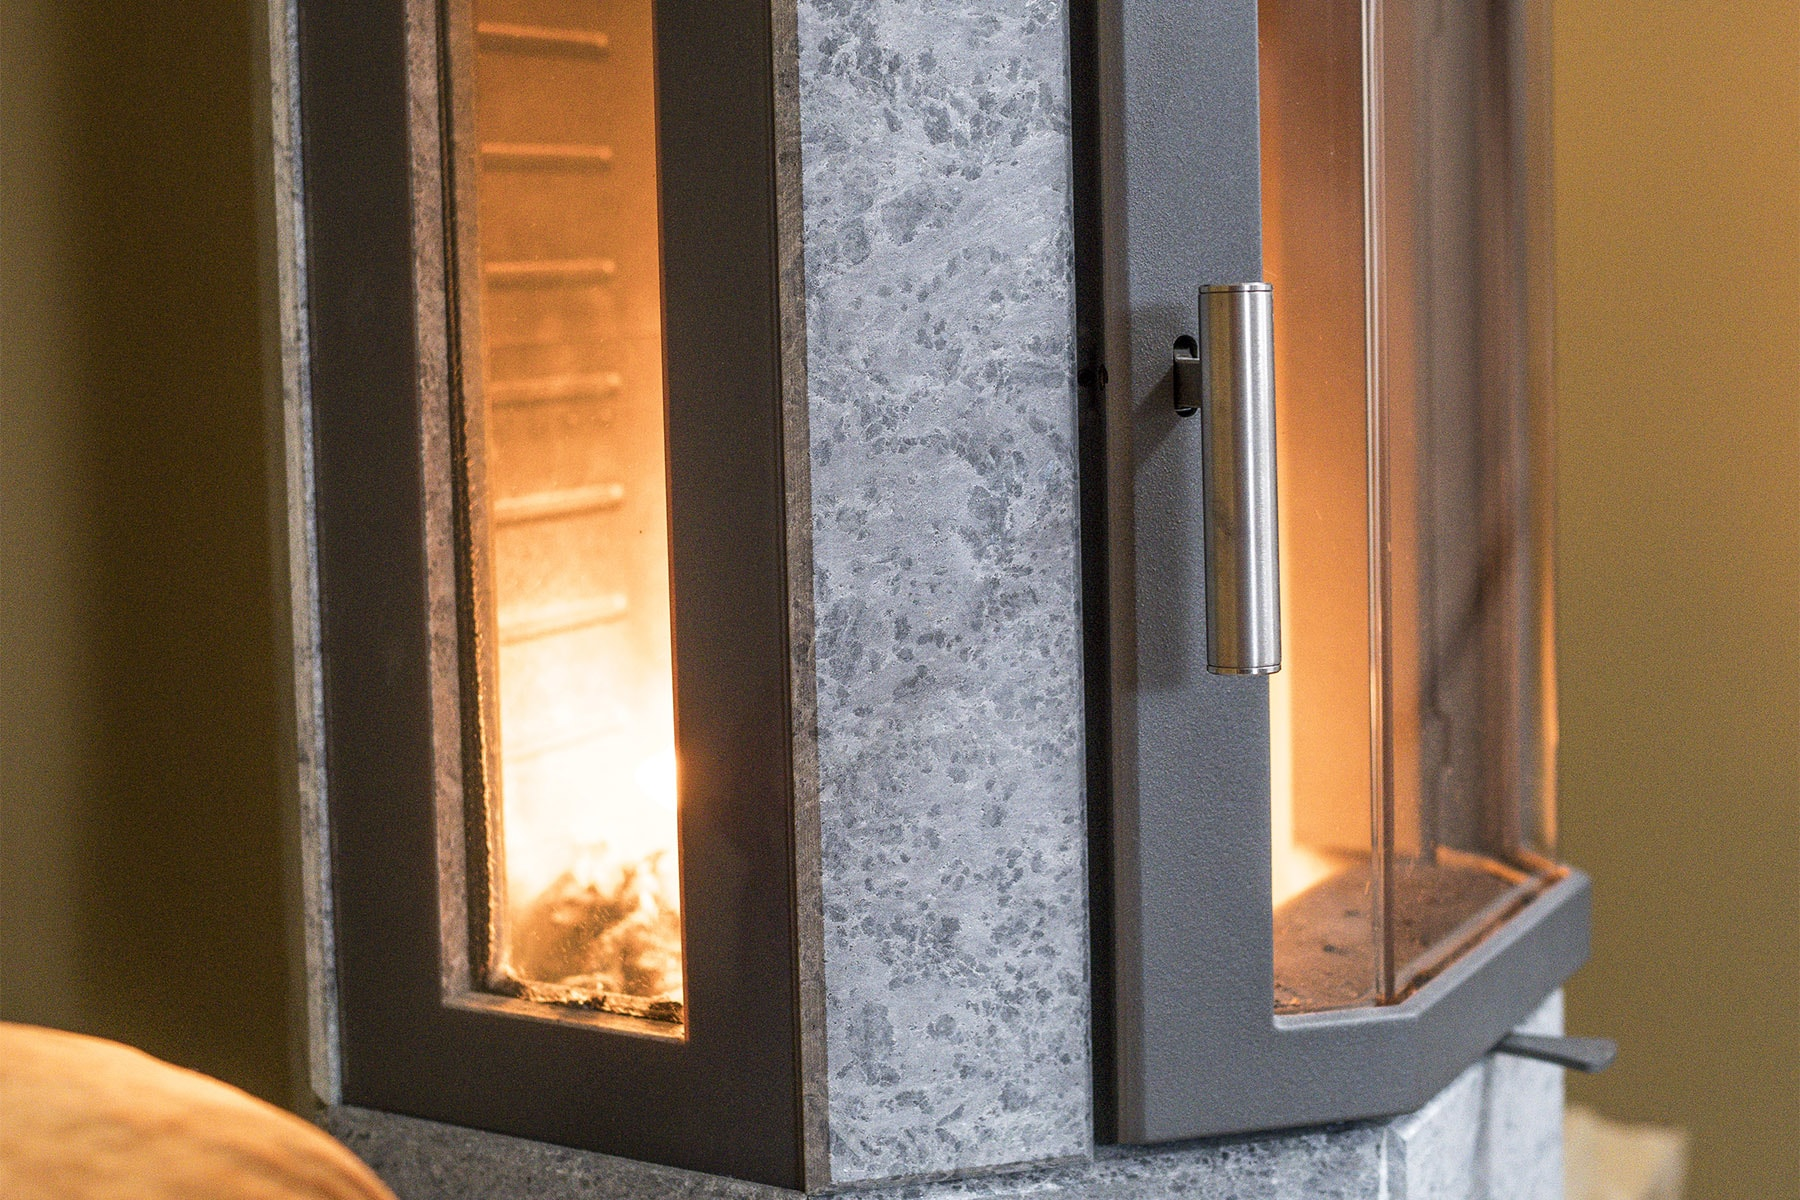 The side windows are an attractive design feature. They are elegantly pulled back one centimetre and then meshed directly into the stone without the need for a metal frame. This gives the stove a stylish and high-quality appearance.